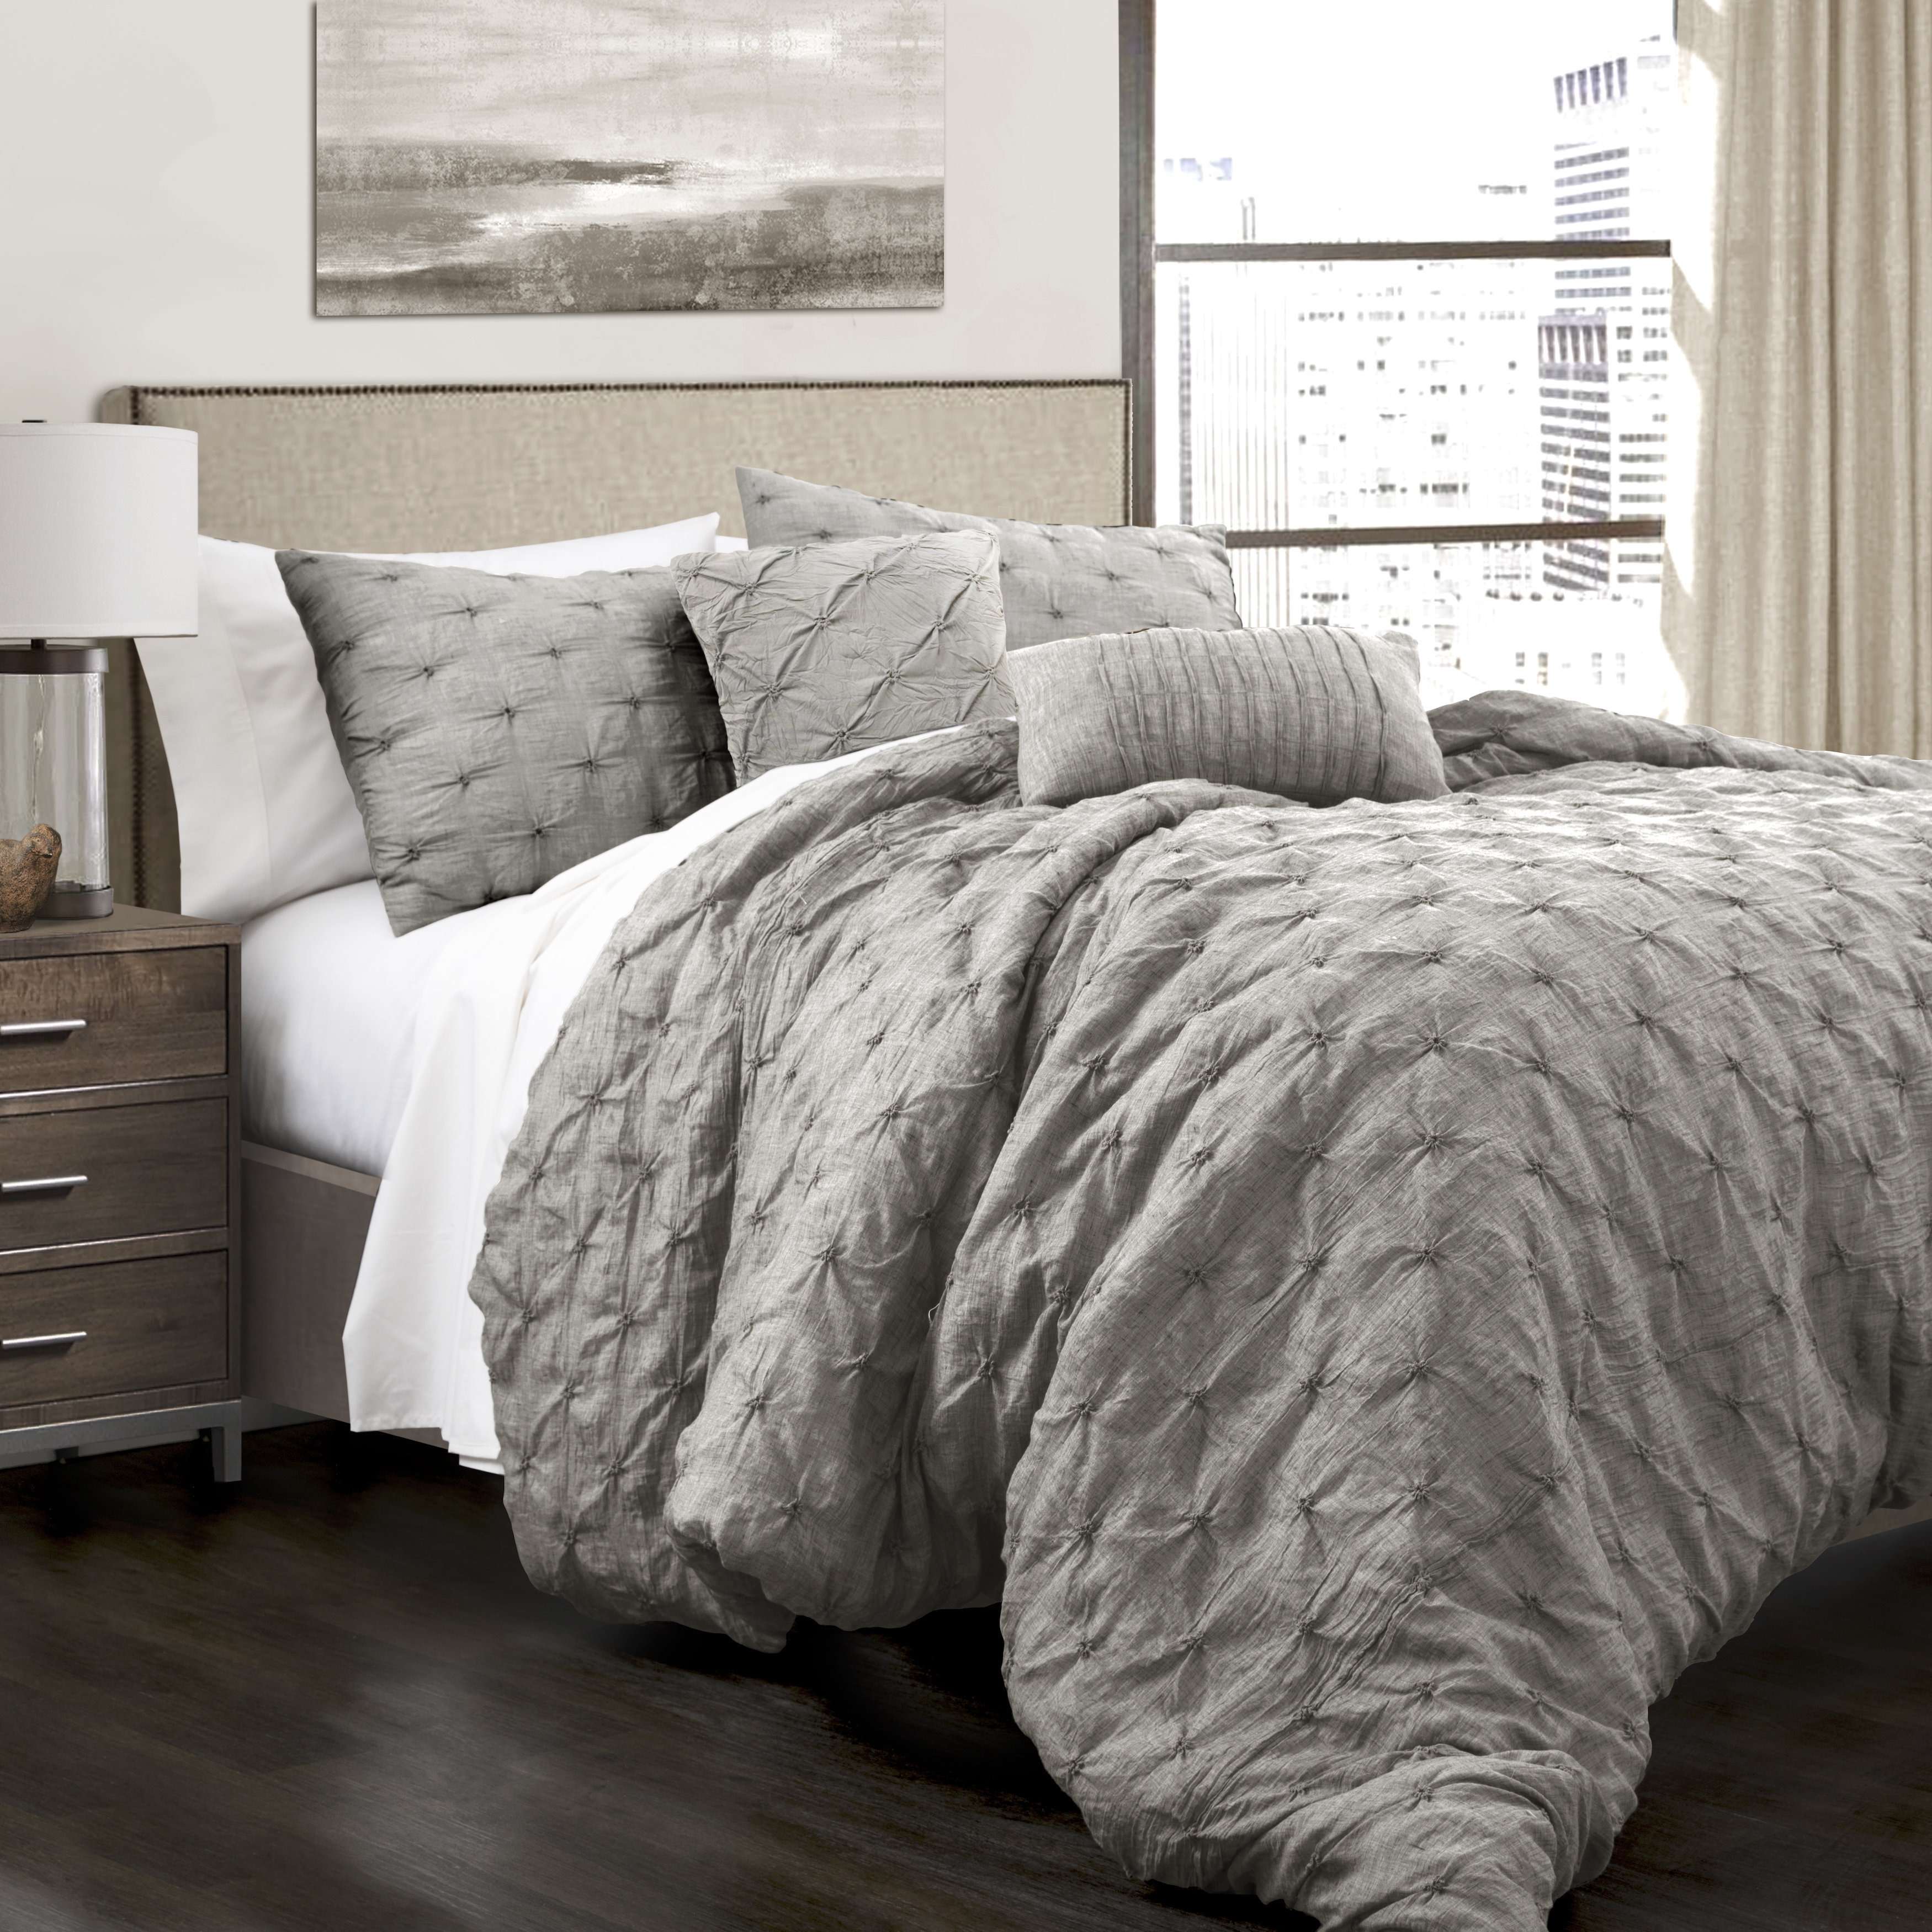 Lush Decor Ravello Pintuck 5 Piece King Size Comforter Se...